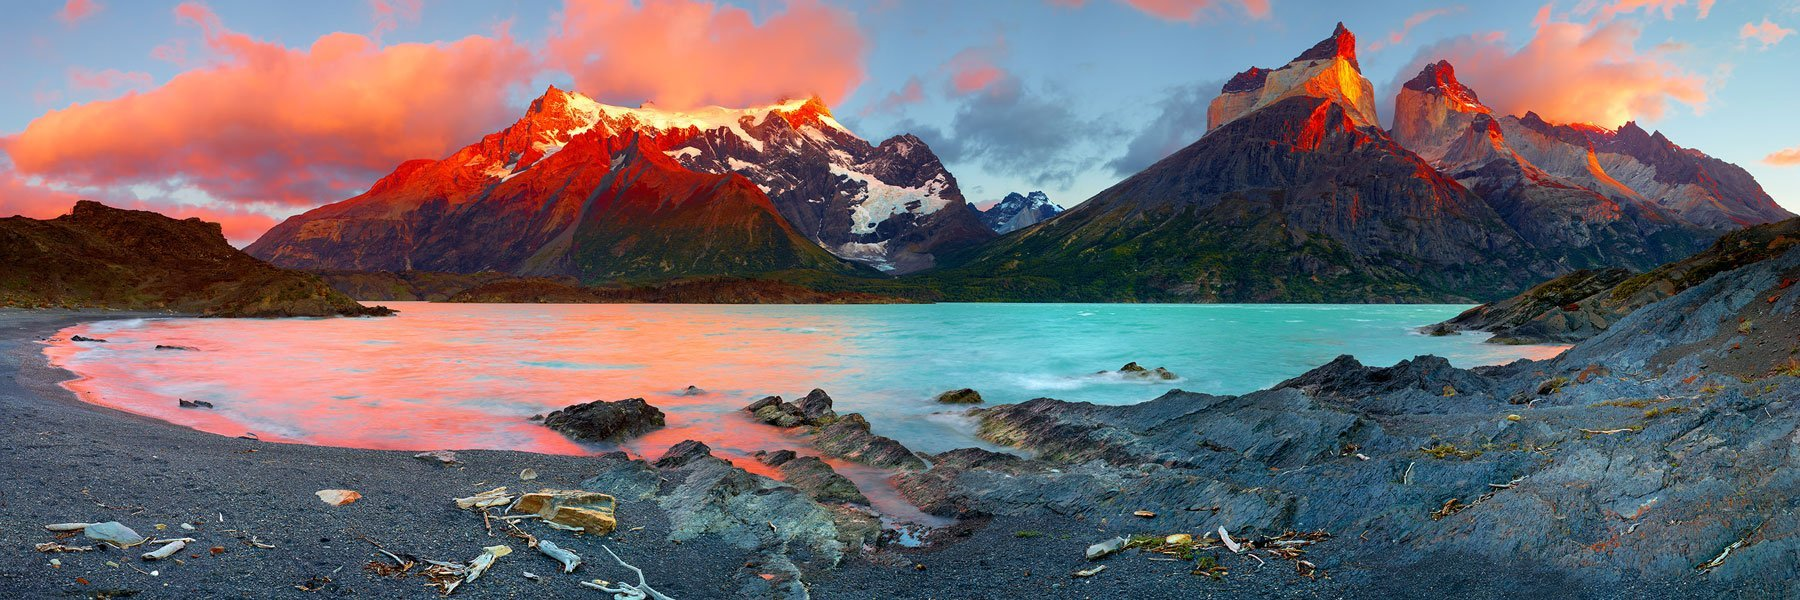 A fiery sunrise over Torres Del Paine, Patagonia, Chile.